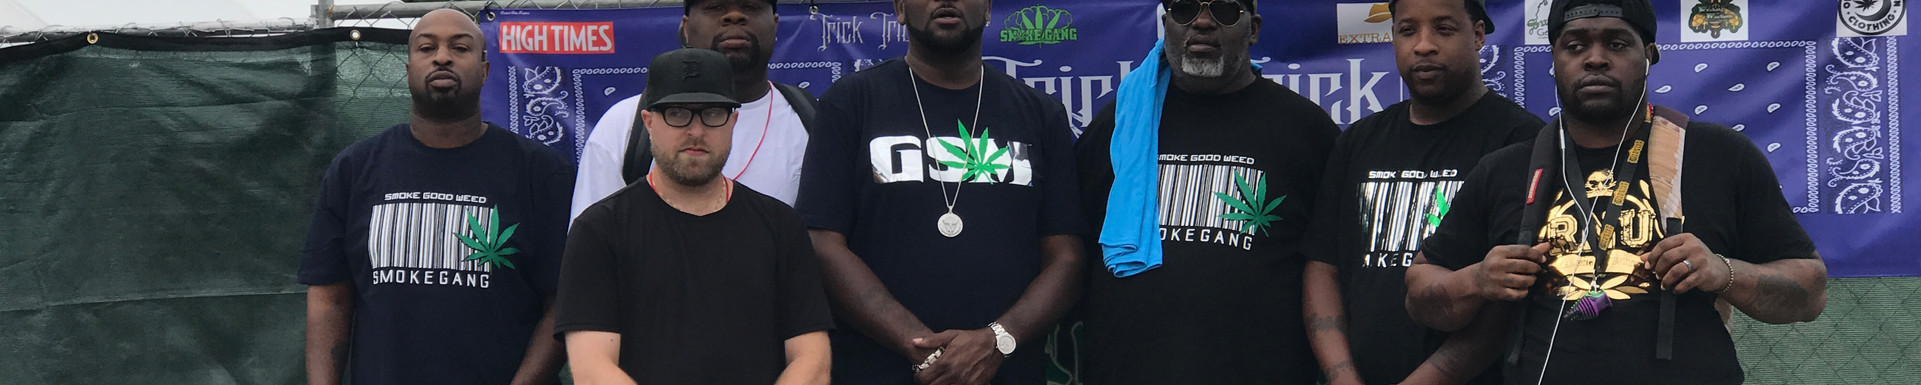 HIGHTIMES CANNABIS CUP MIDWEST 2017